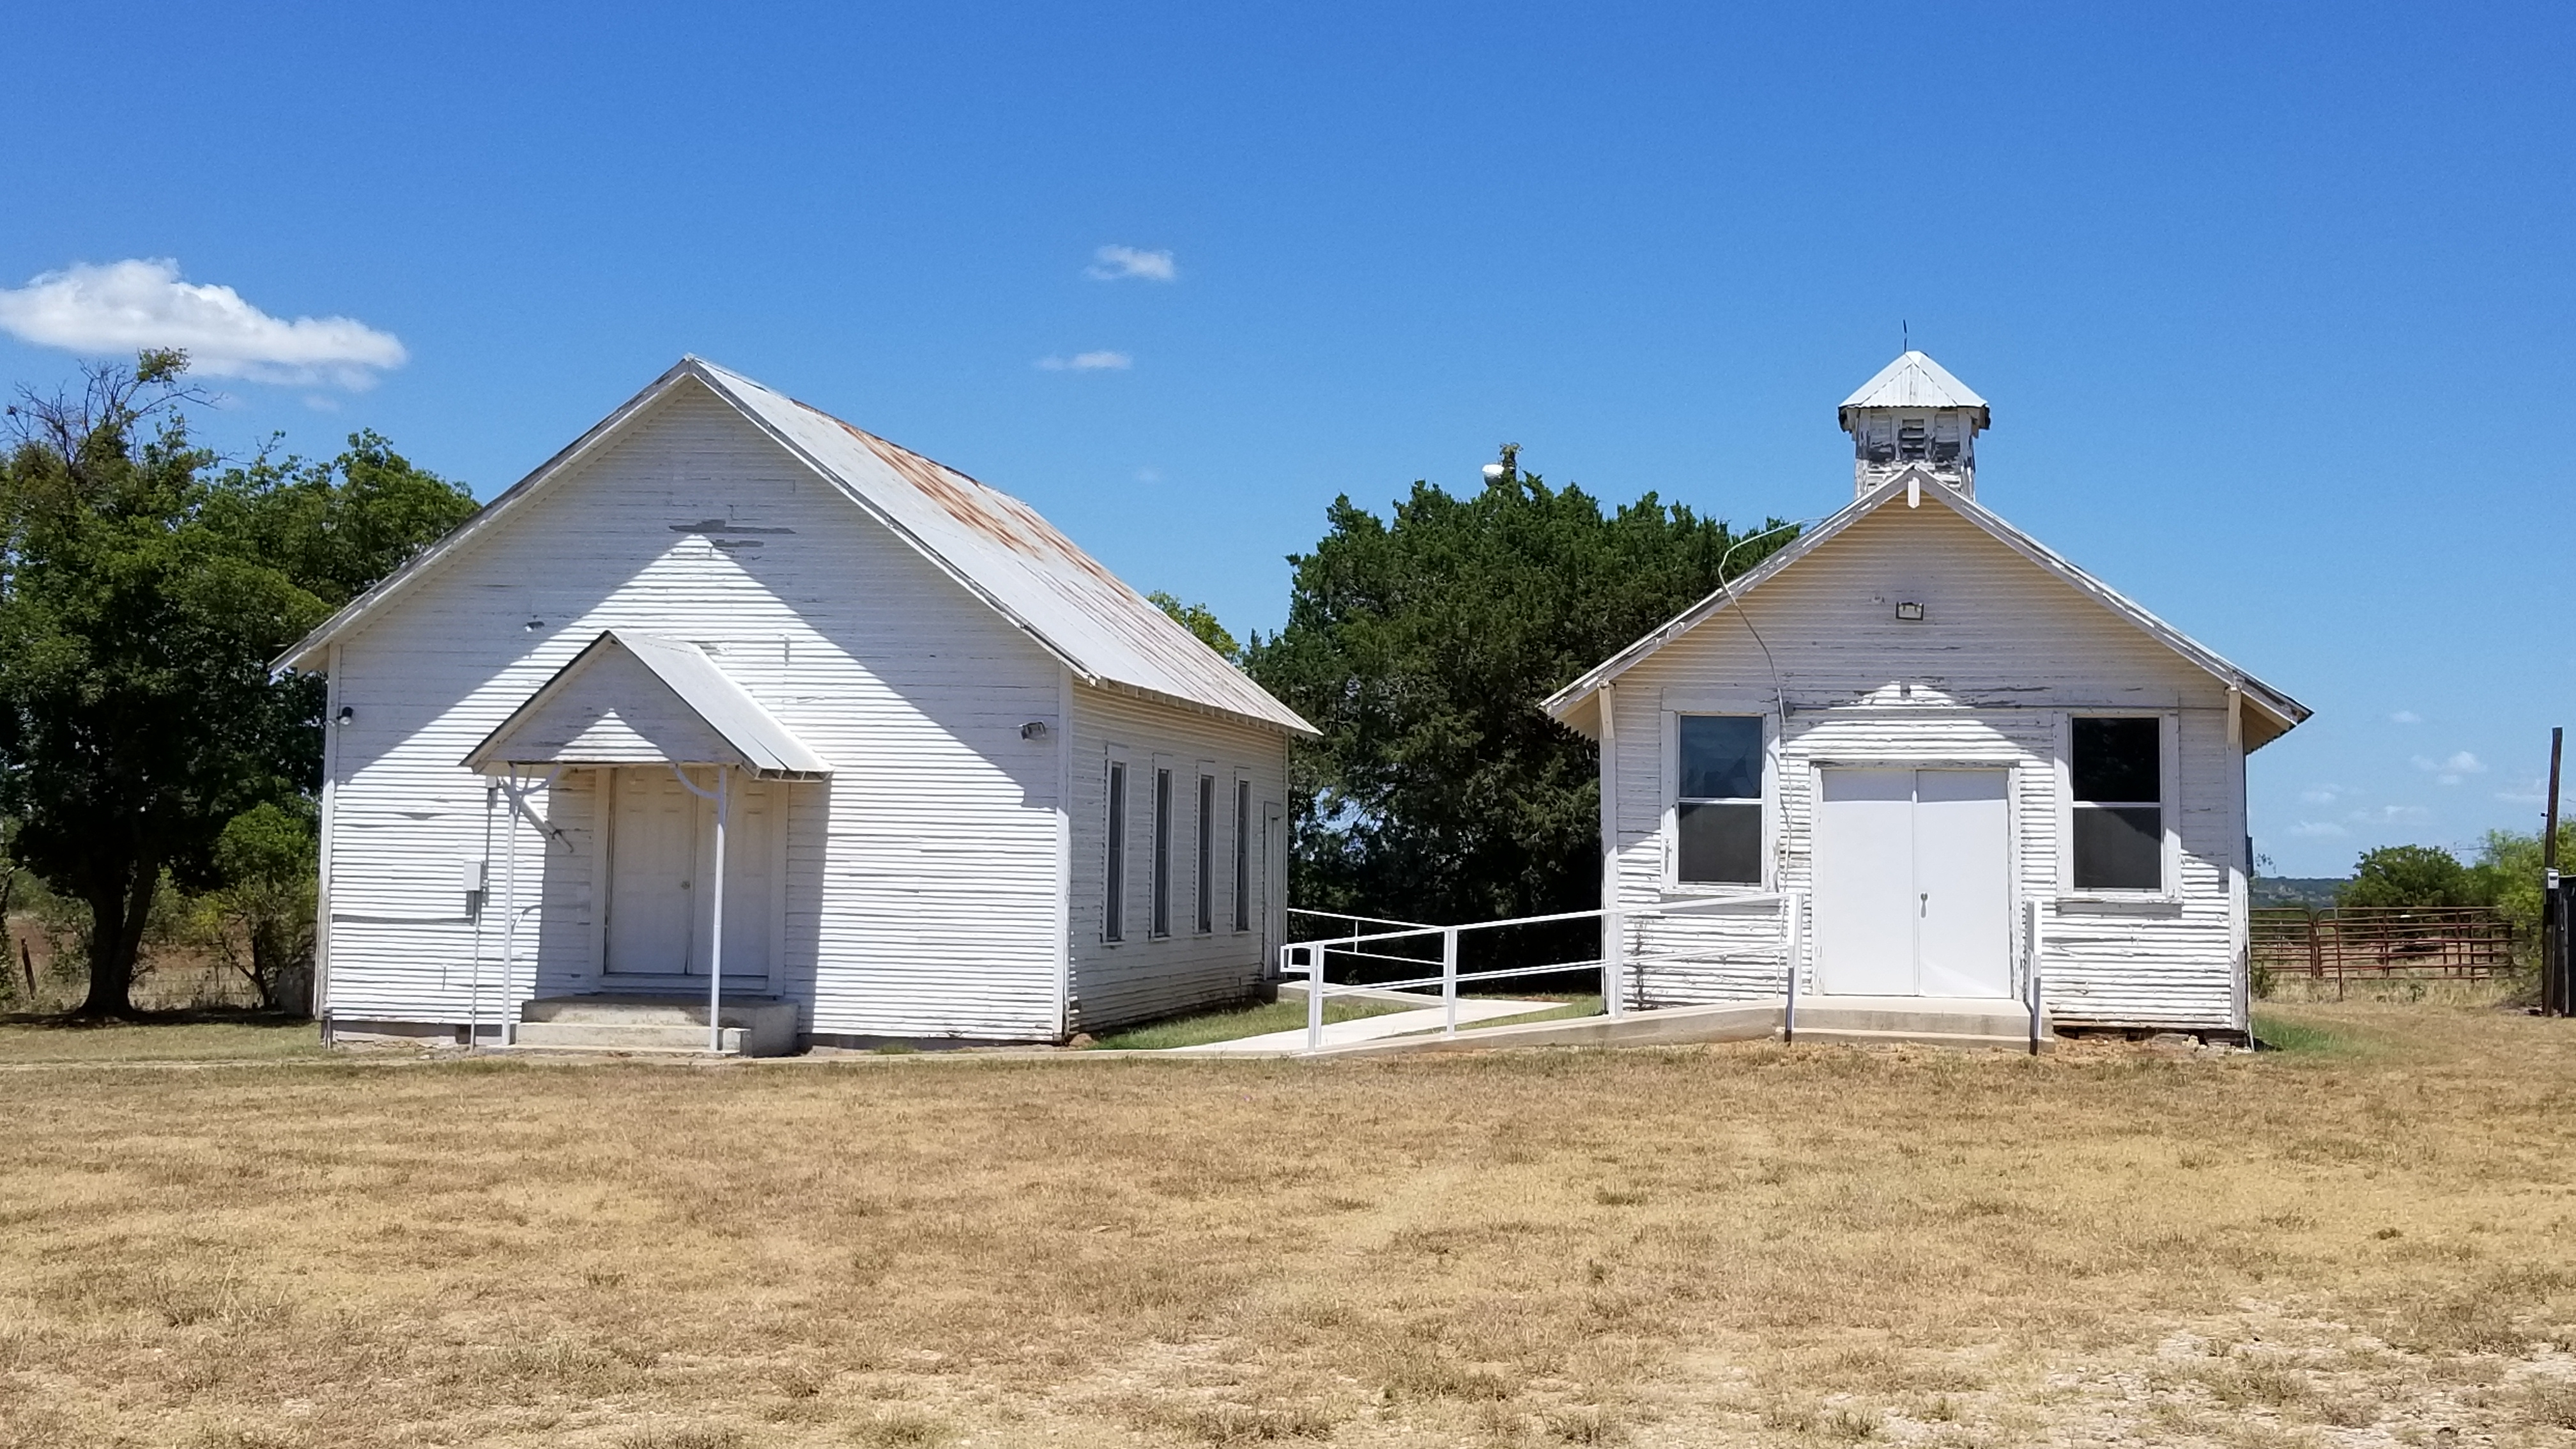 Two Remaining Buildings in Gunsight Community